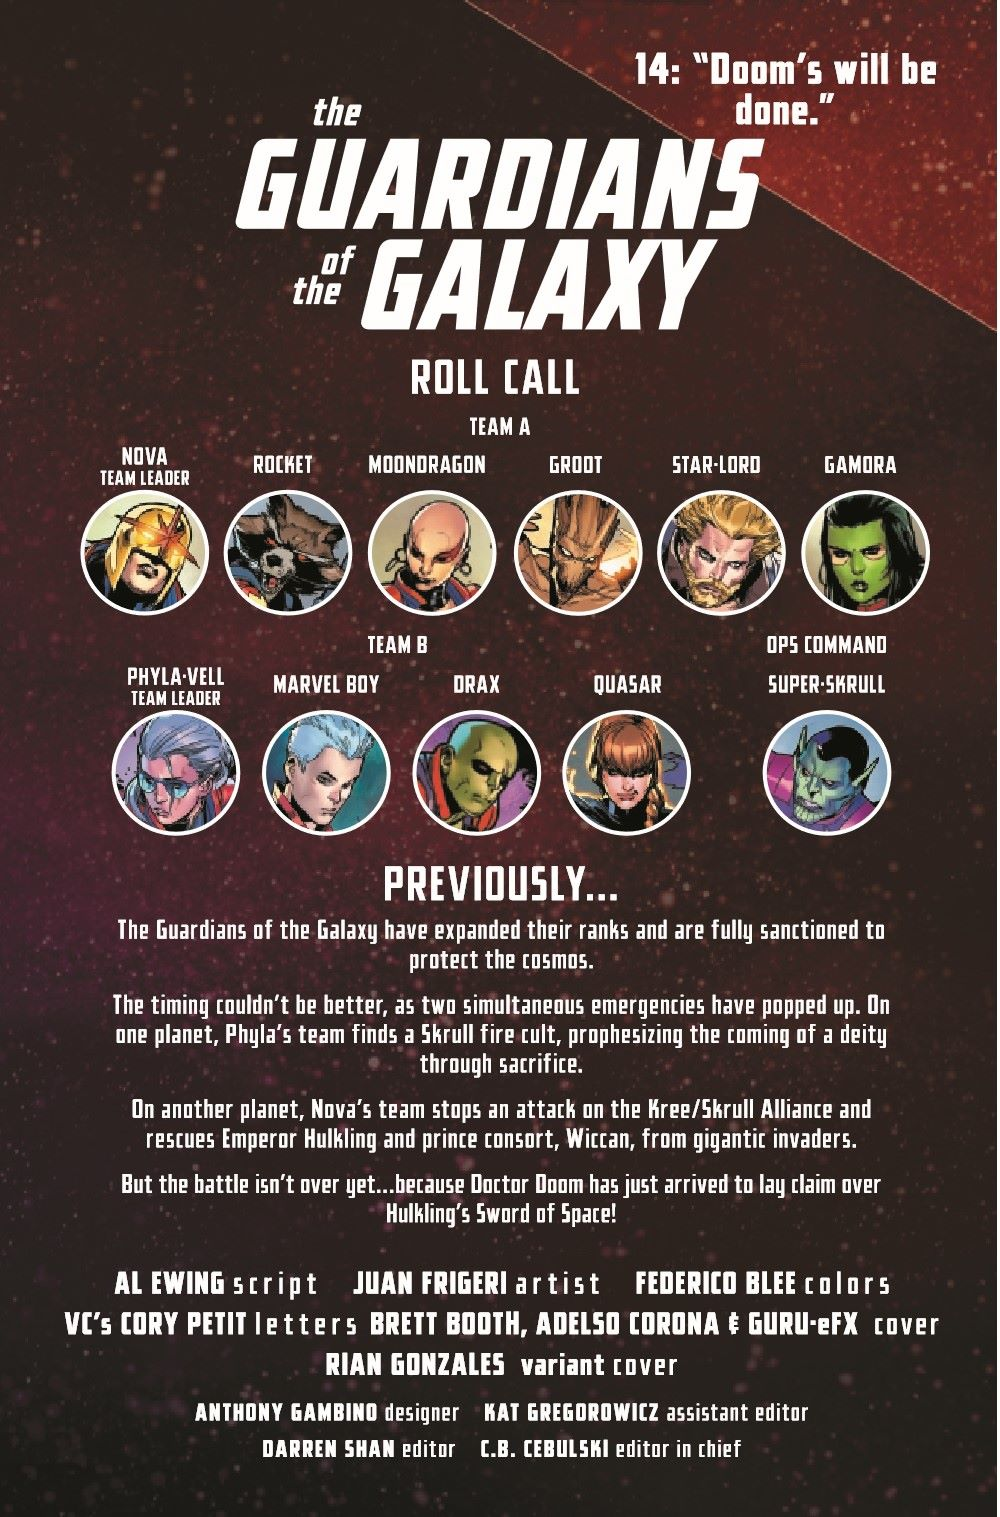 GARGAL2020014_Preview-2 ComicList Previews: GUARDIANS OF THE GALAXY #14